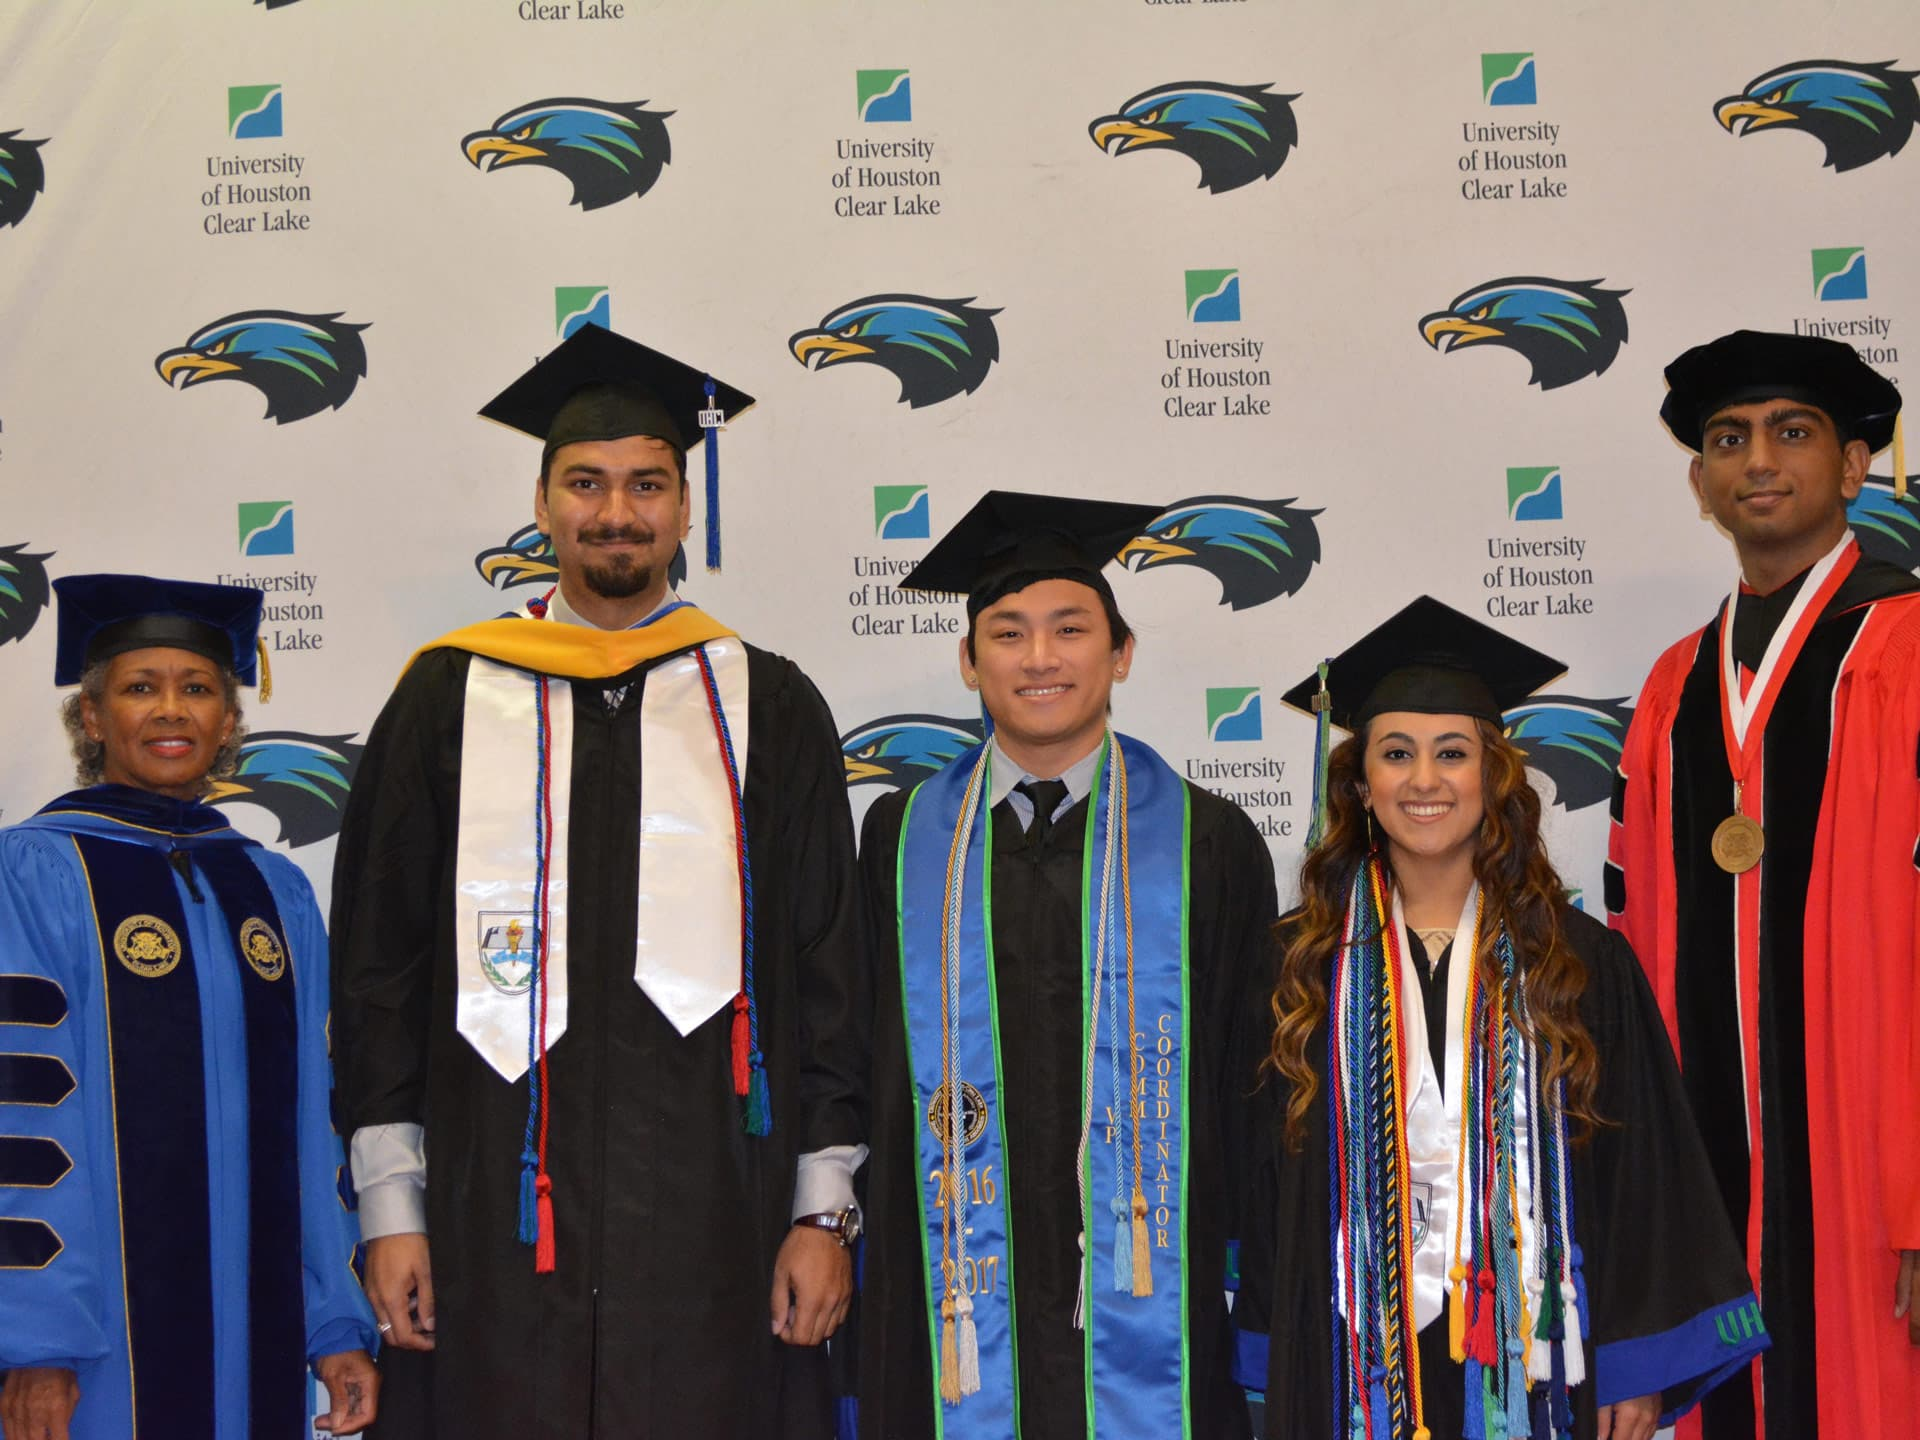 UHCL student dignitaries greet grads at commencement